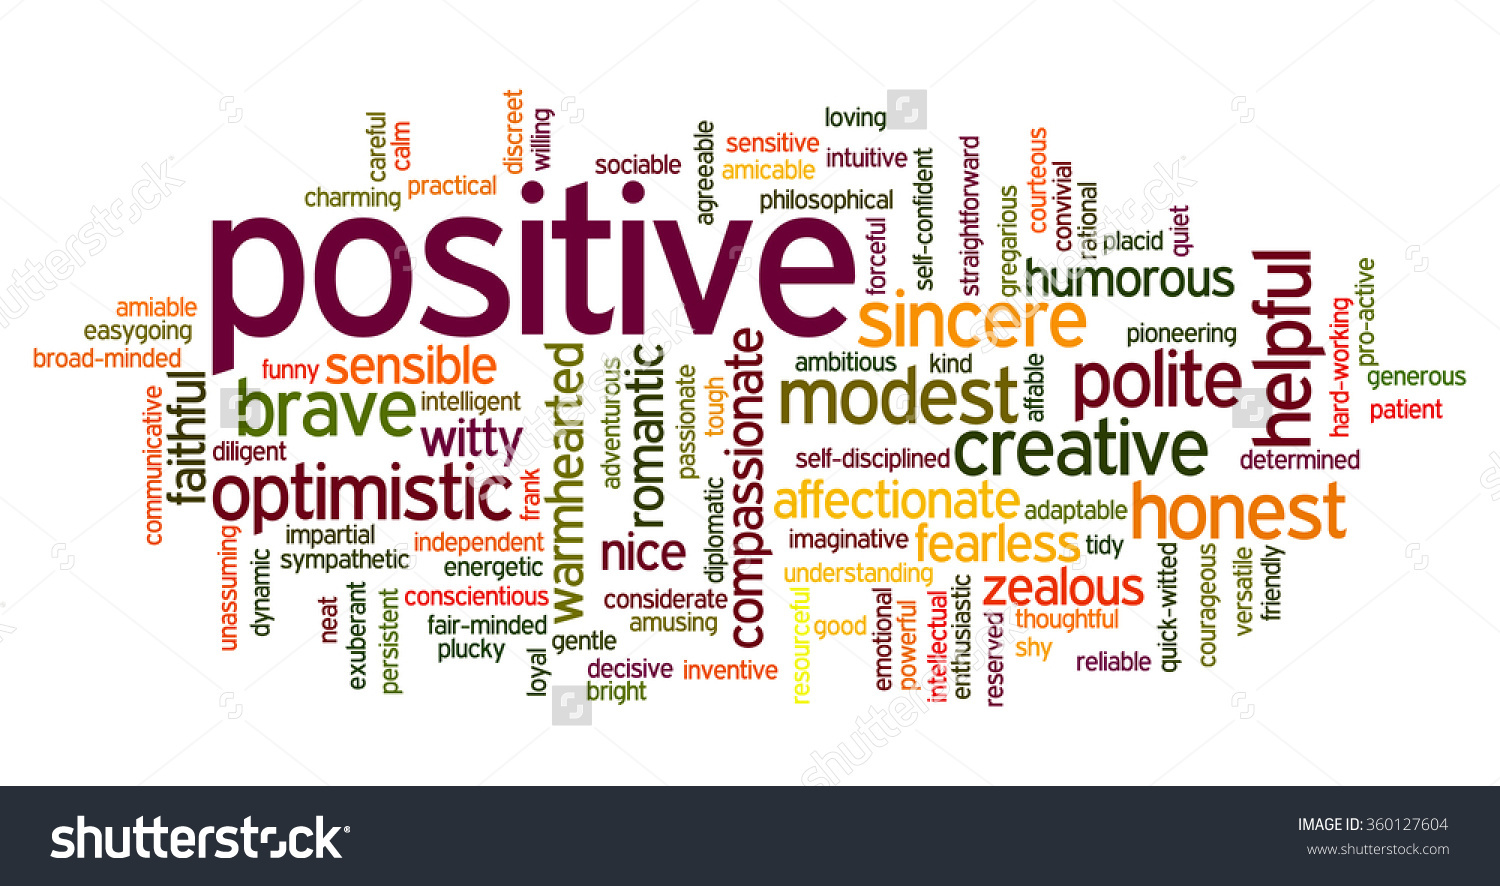 words positive personality describe person related features funny friendly english containing conceptual cloud honest tag such helpful shutterstock vector discreet